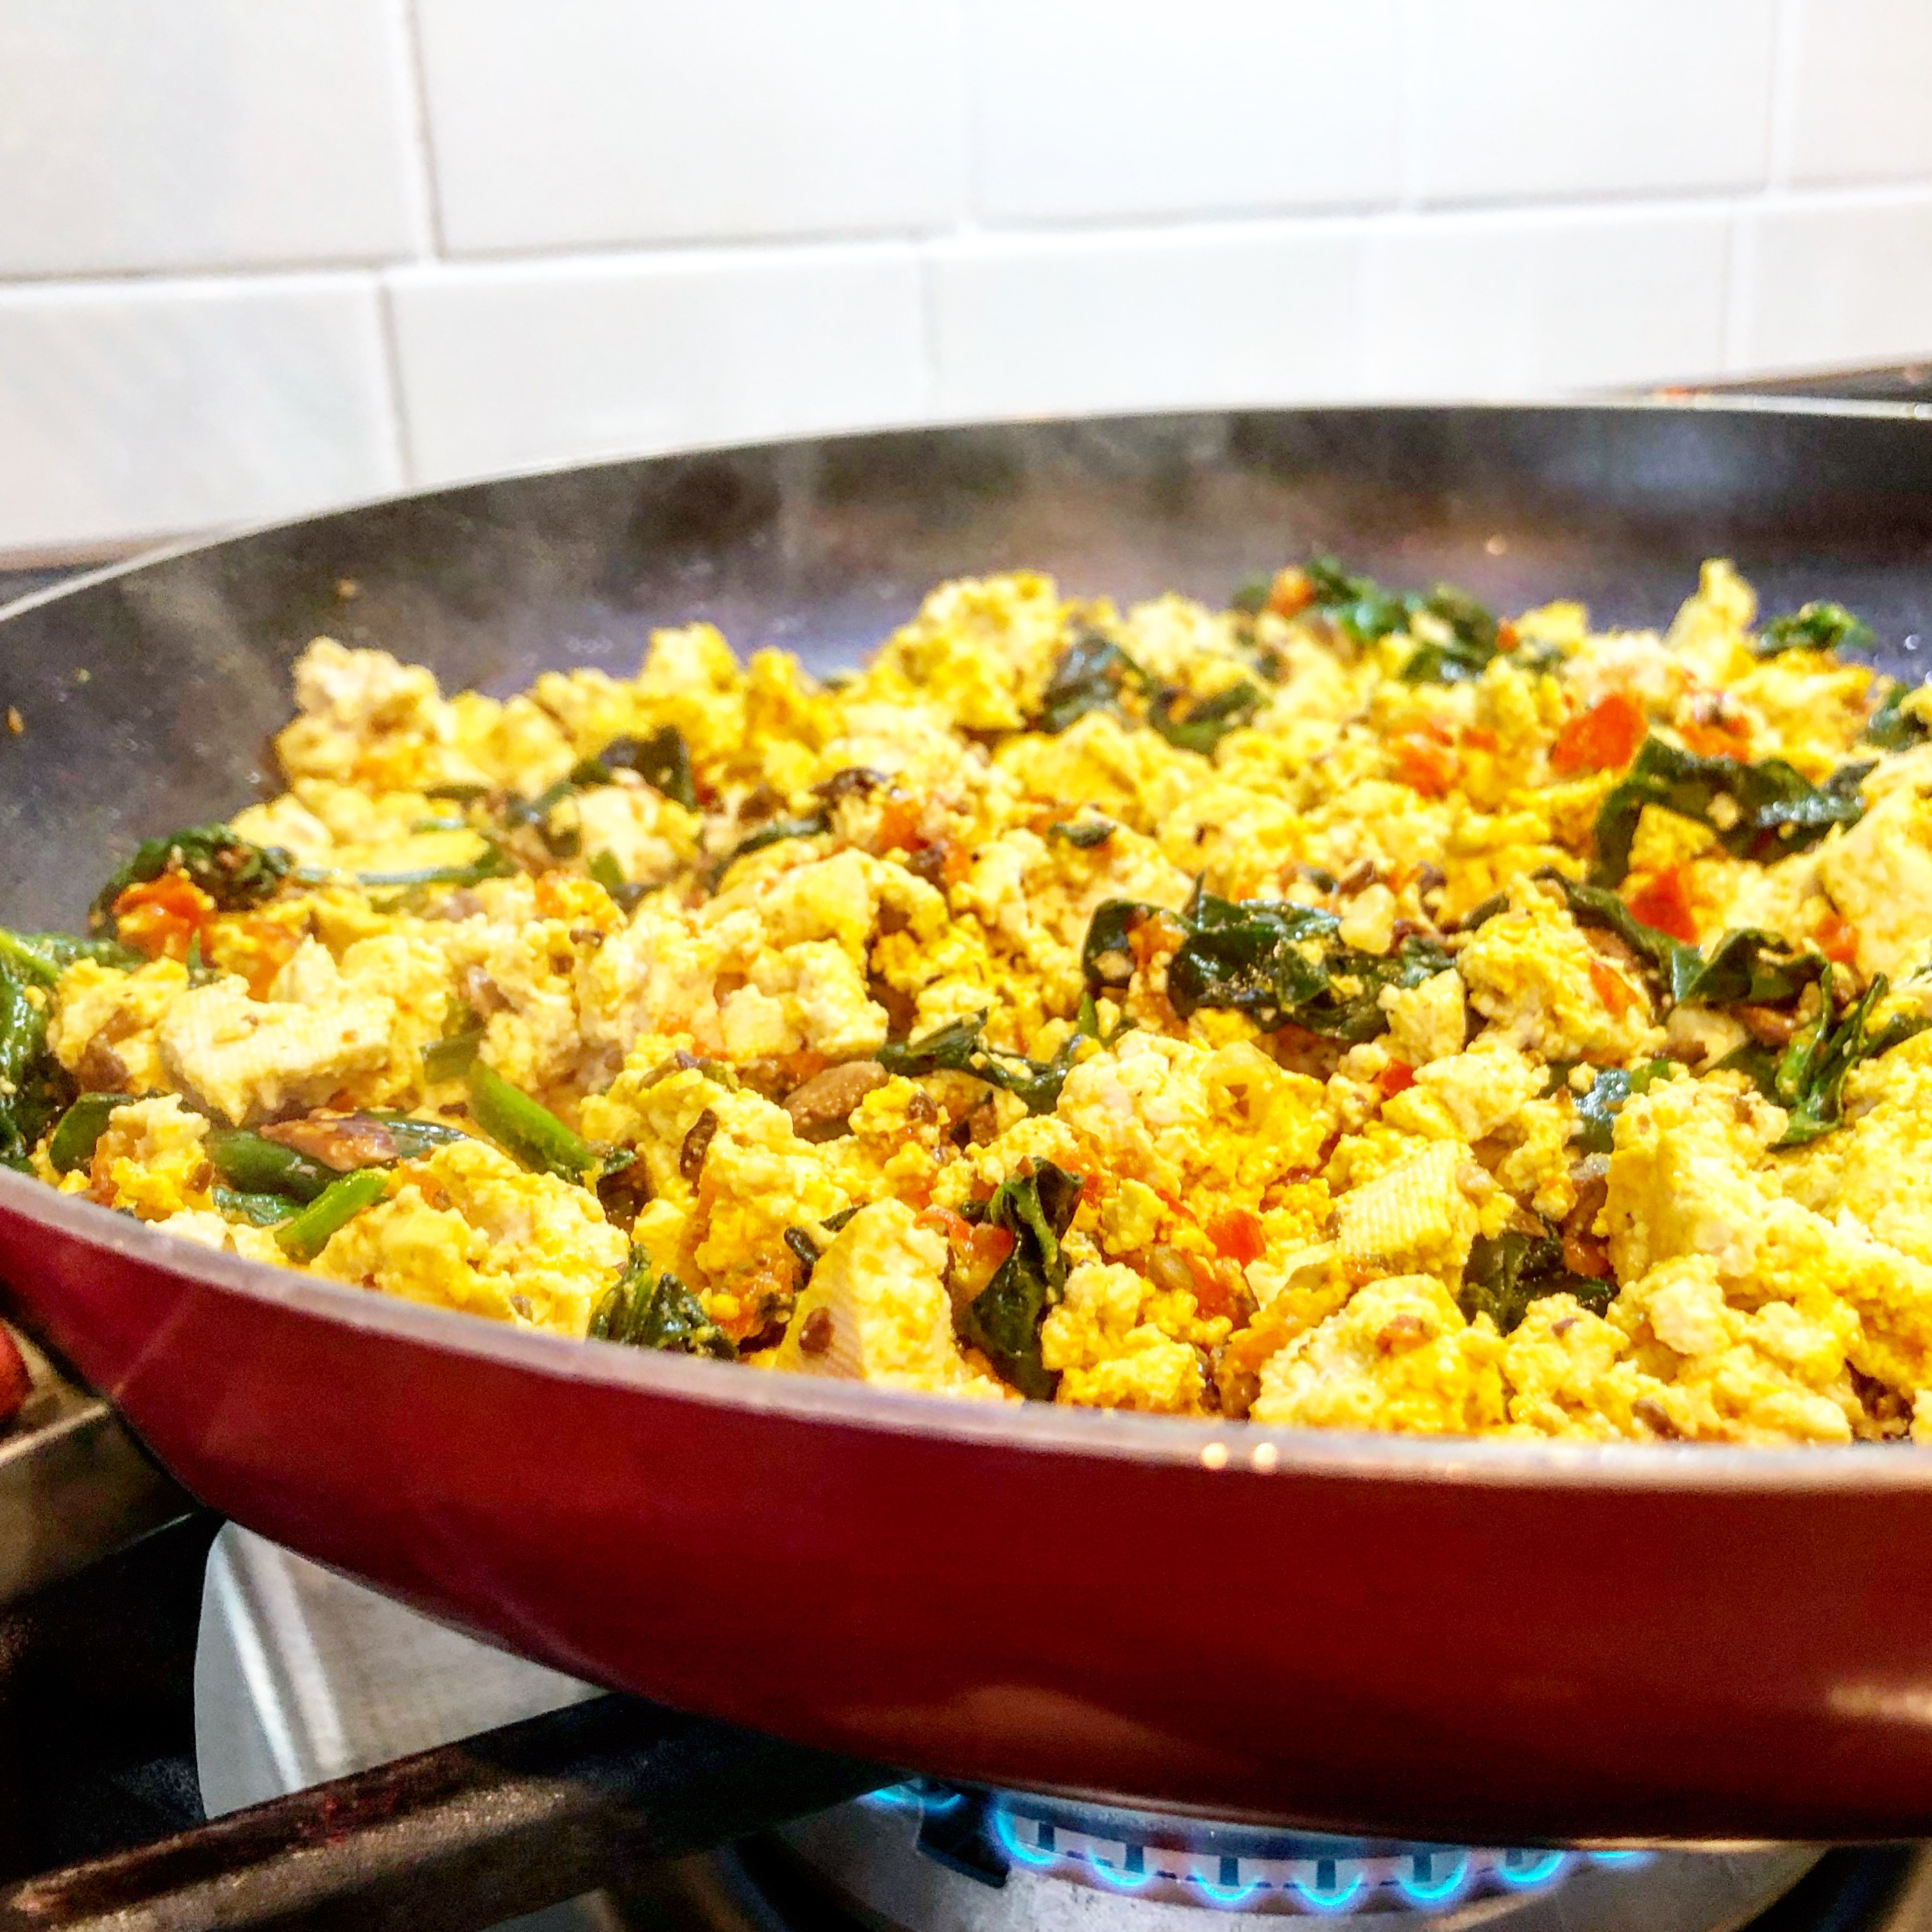 Saturday Morning Tofu Scramble - A quick and easy vegan breakfast tofu scramble the whole family will love! This recipe is very forgiving and easy to customize to what you have on hand. via @thiswifecooks